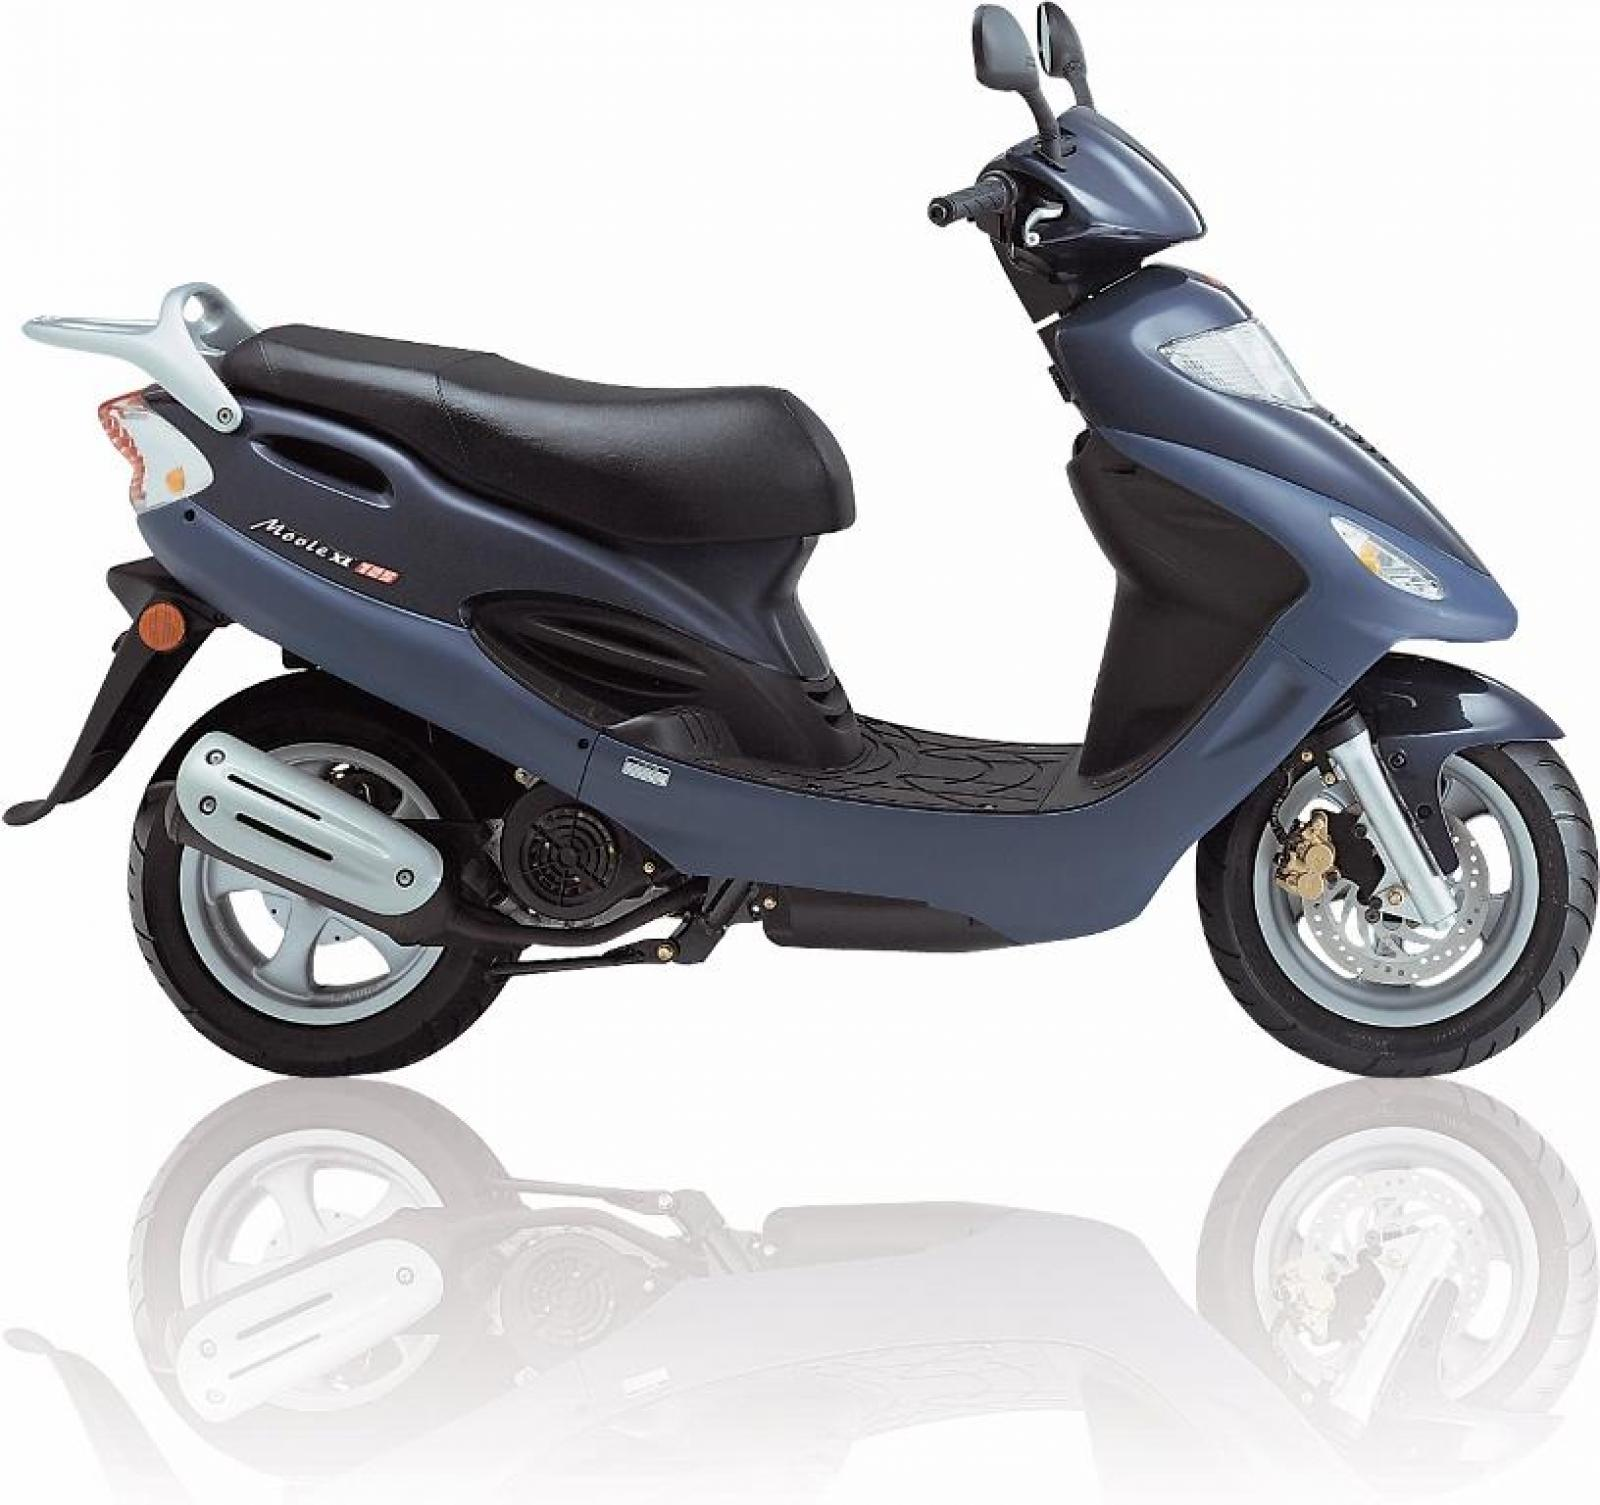 Kymco Heroism 150 images #100856